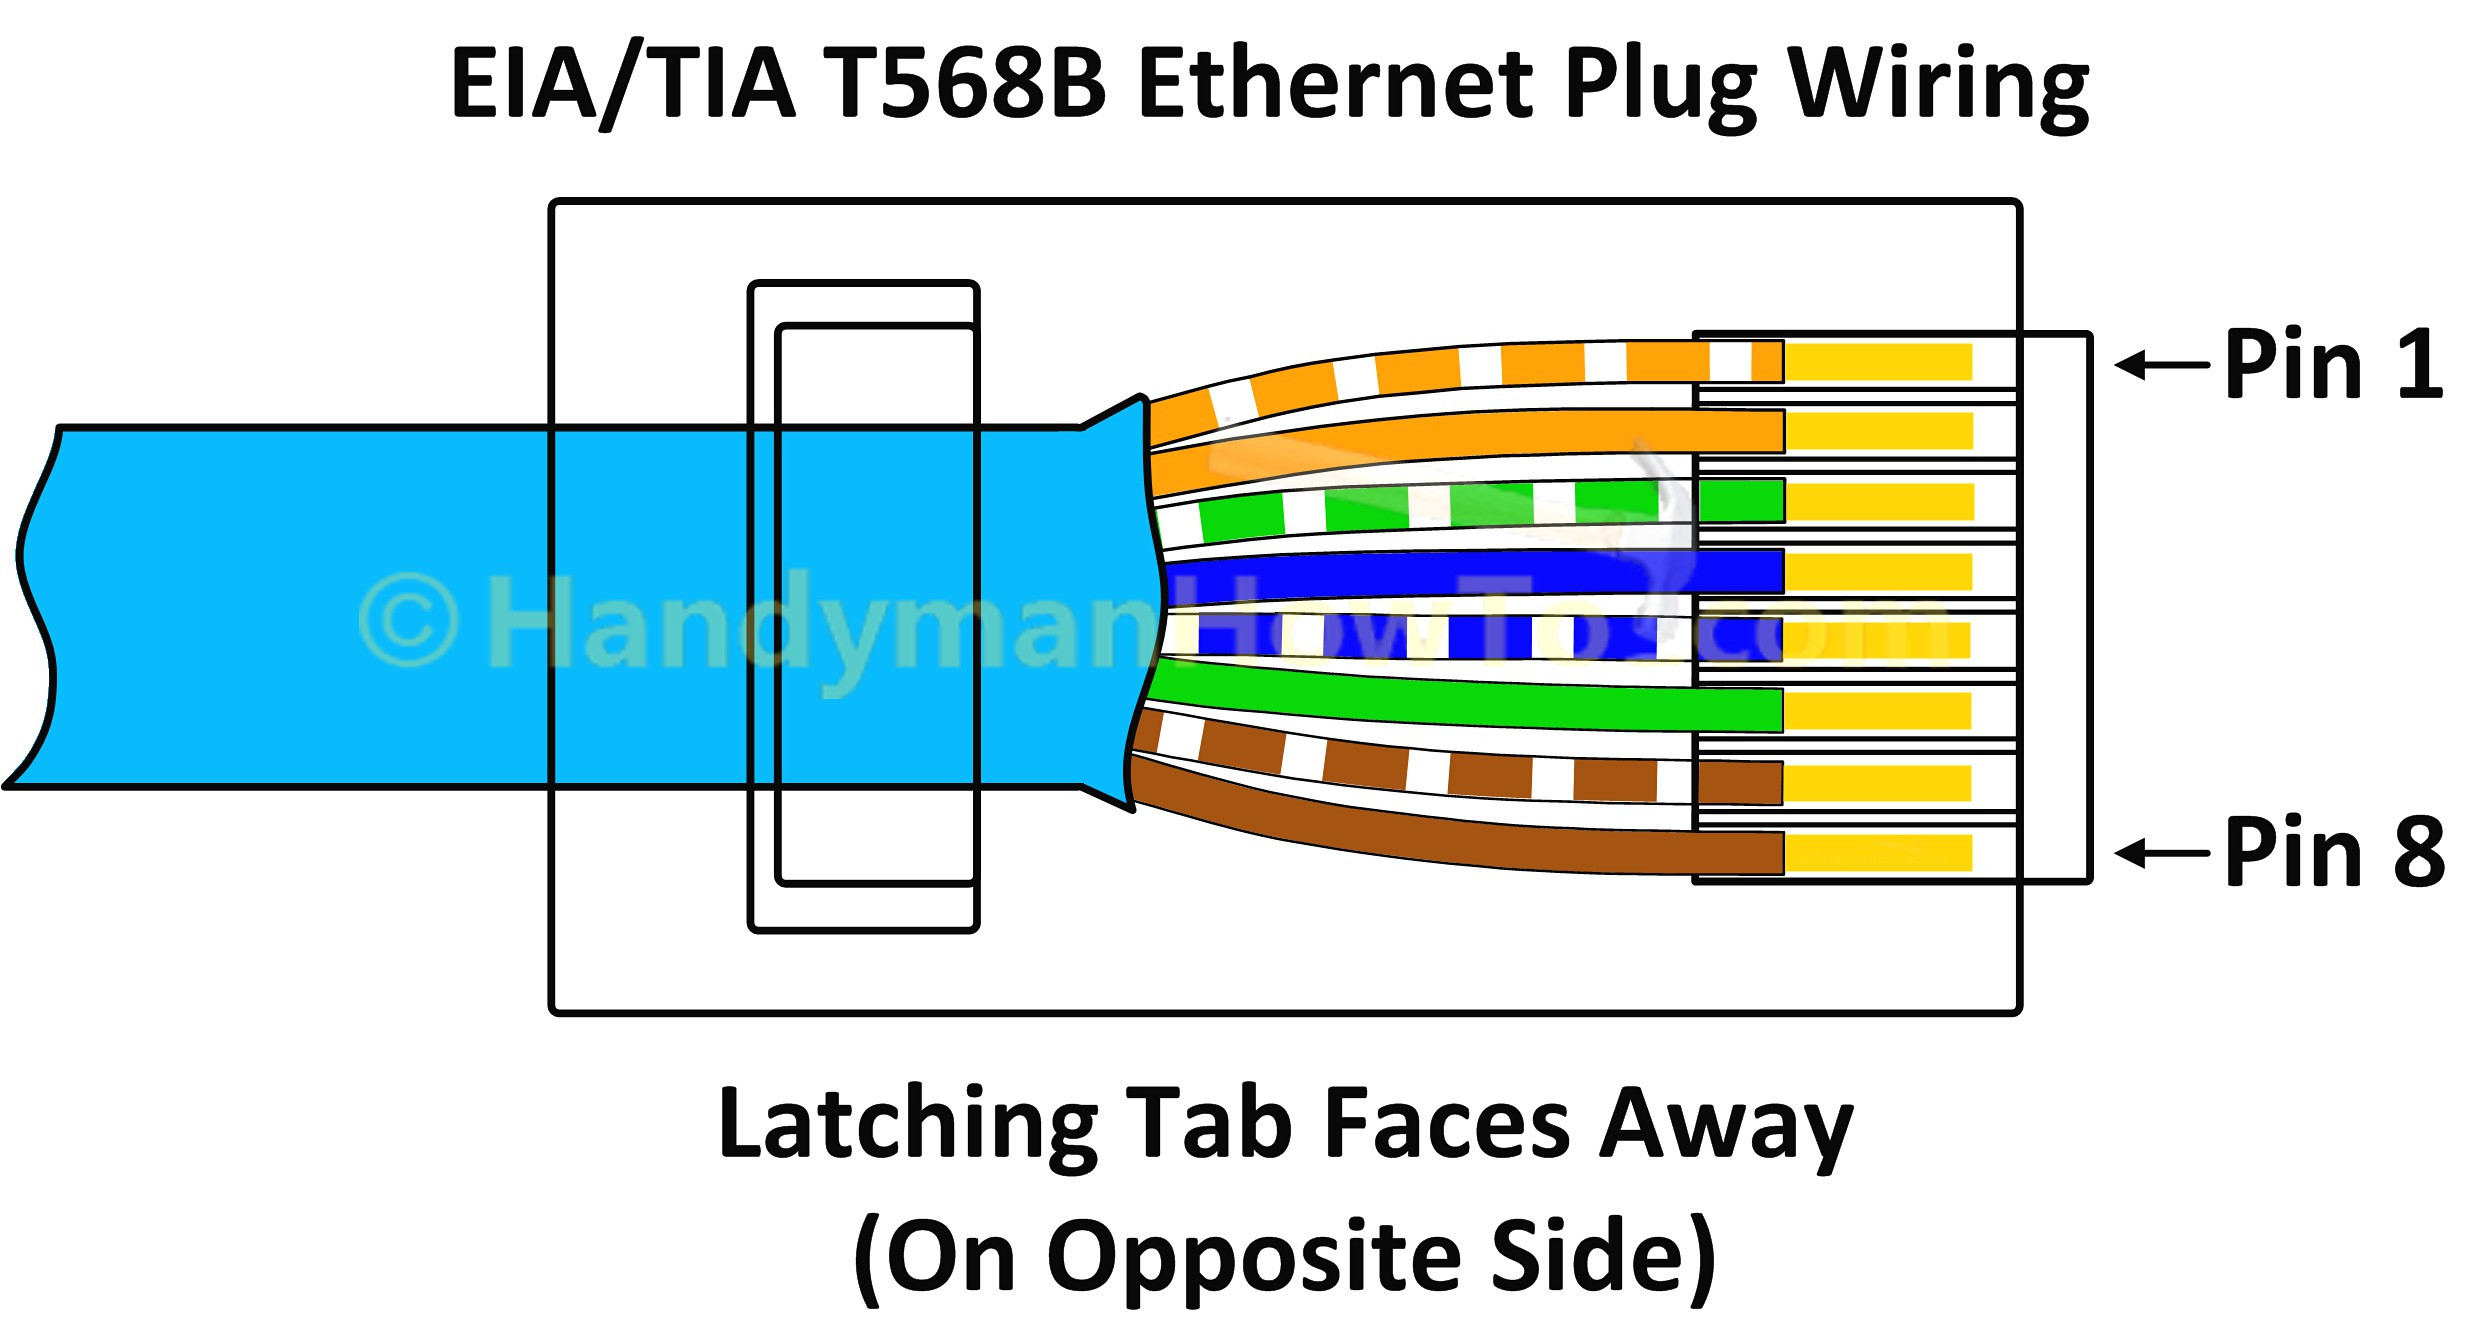 cat6e wiring diagram Collection-Cat6 Wall Plate Wiring Diagram Australia New Elegant Cat5e Wiring Diagram Diagram 13-f